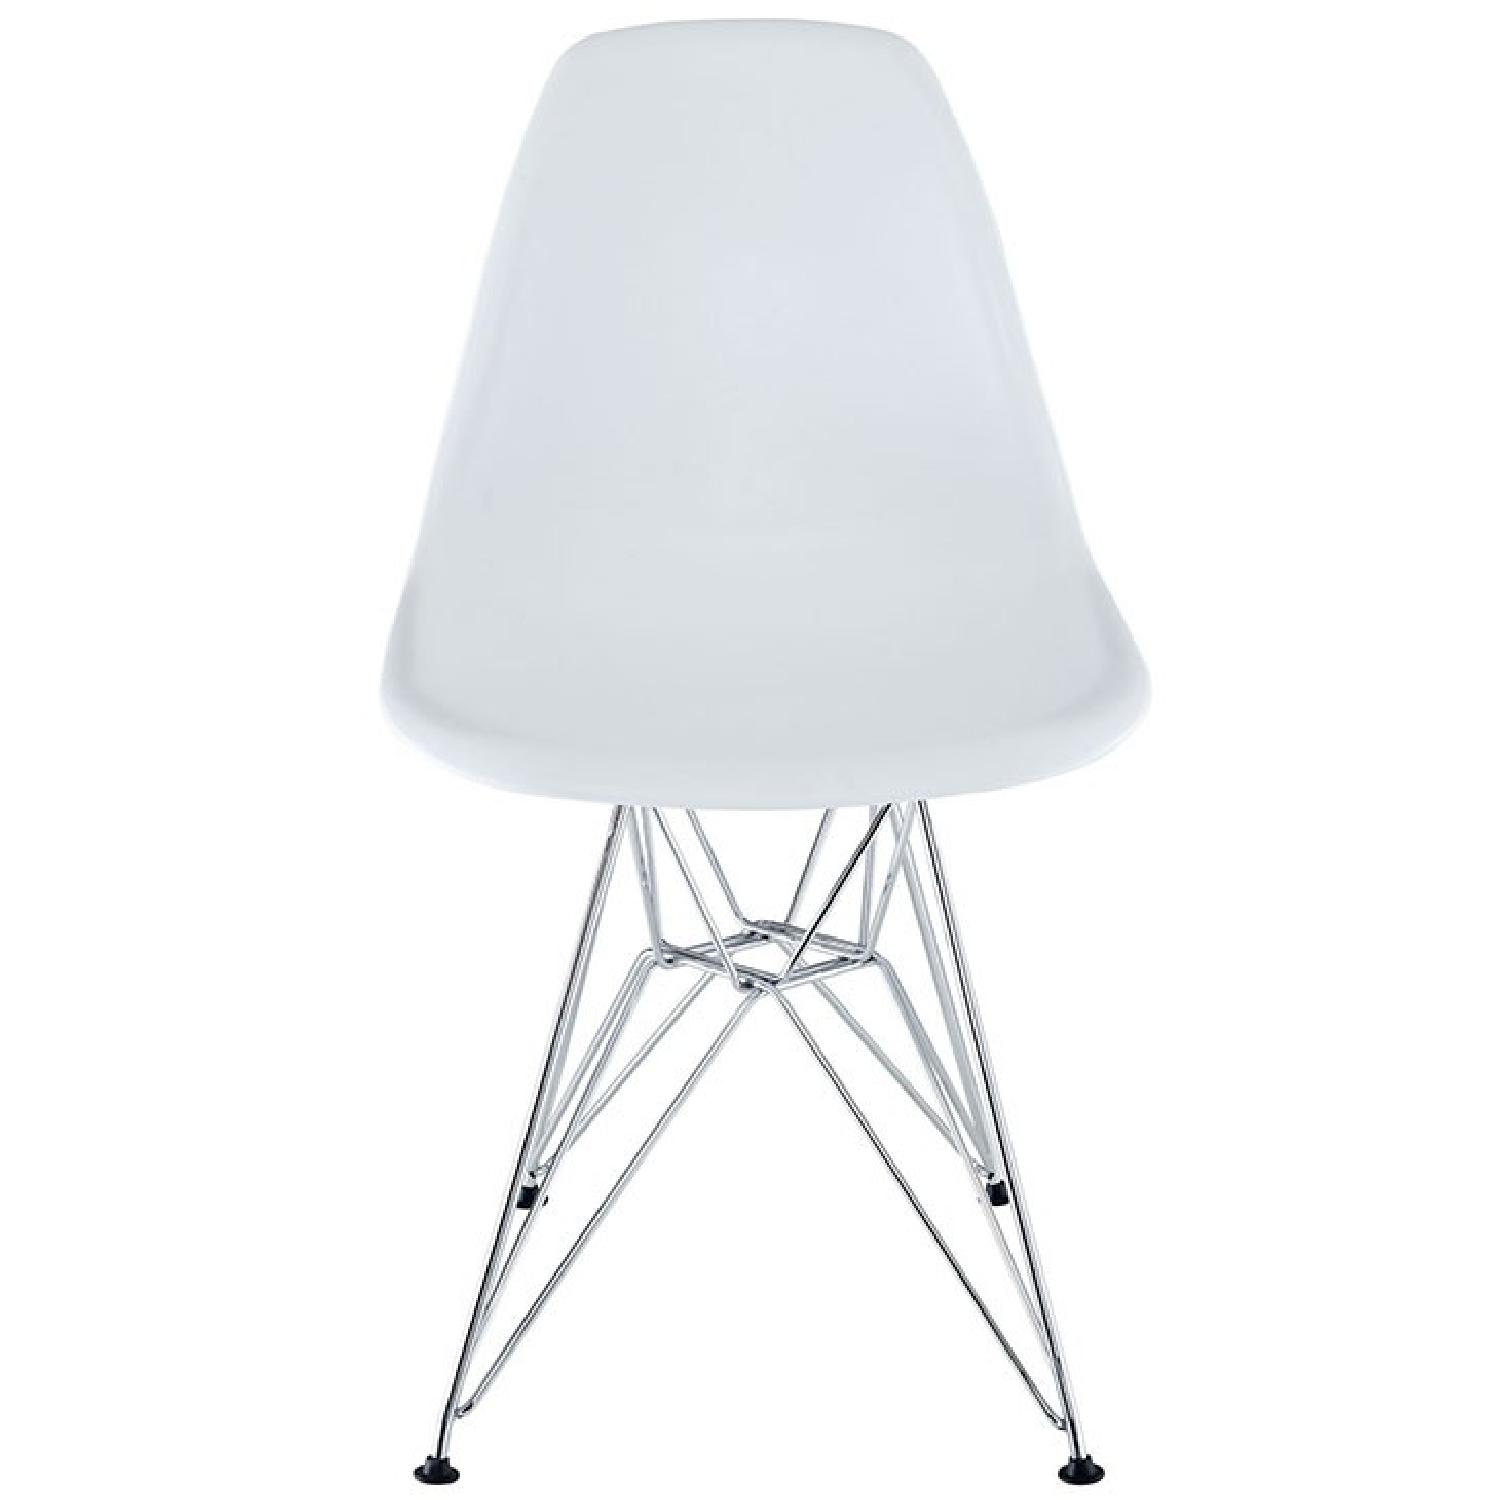 Lenny Dining Chair - image-1